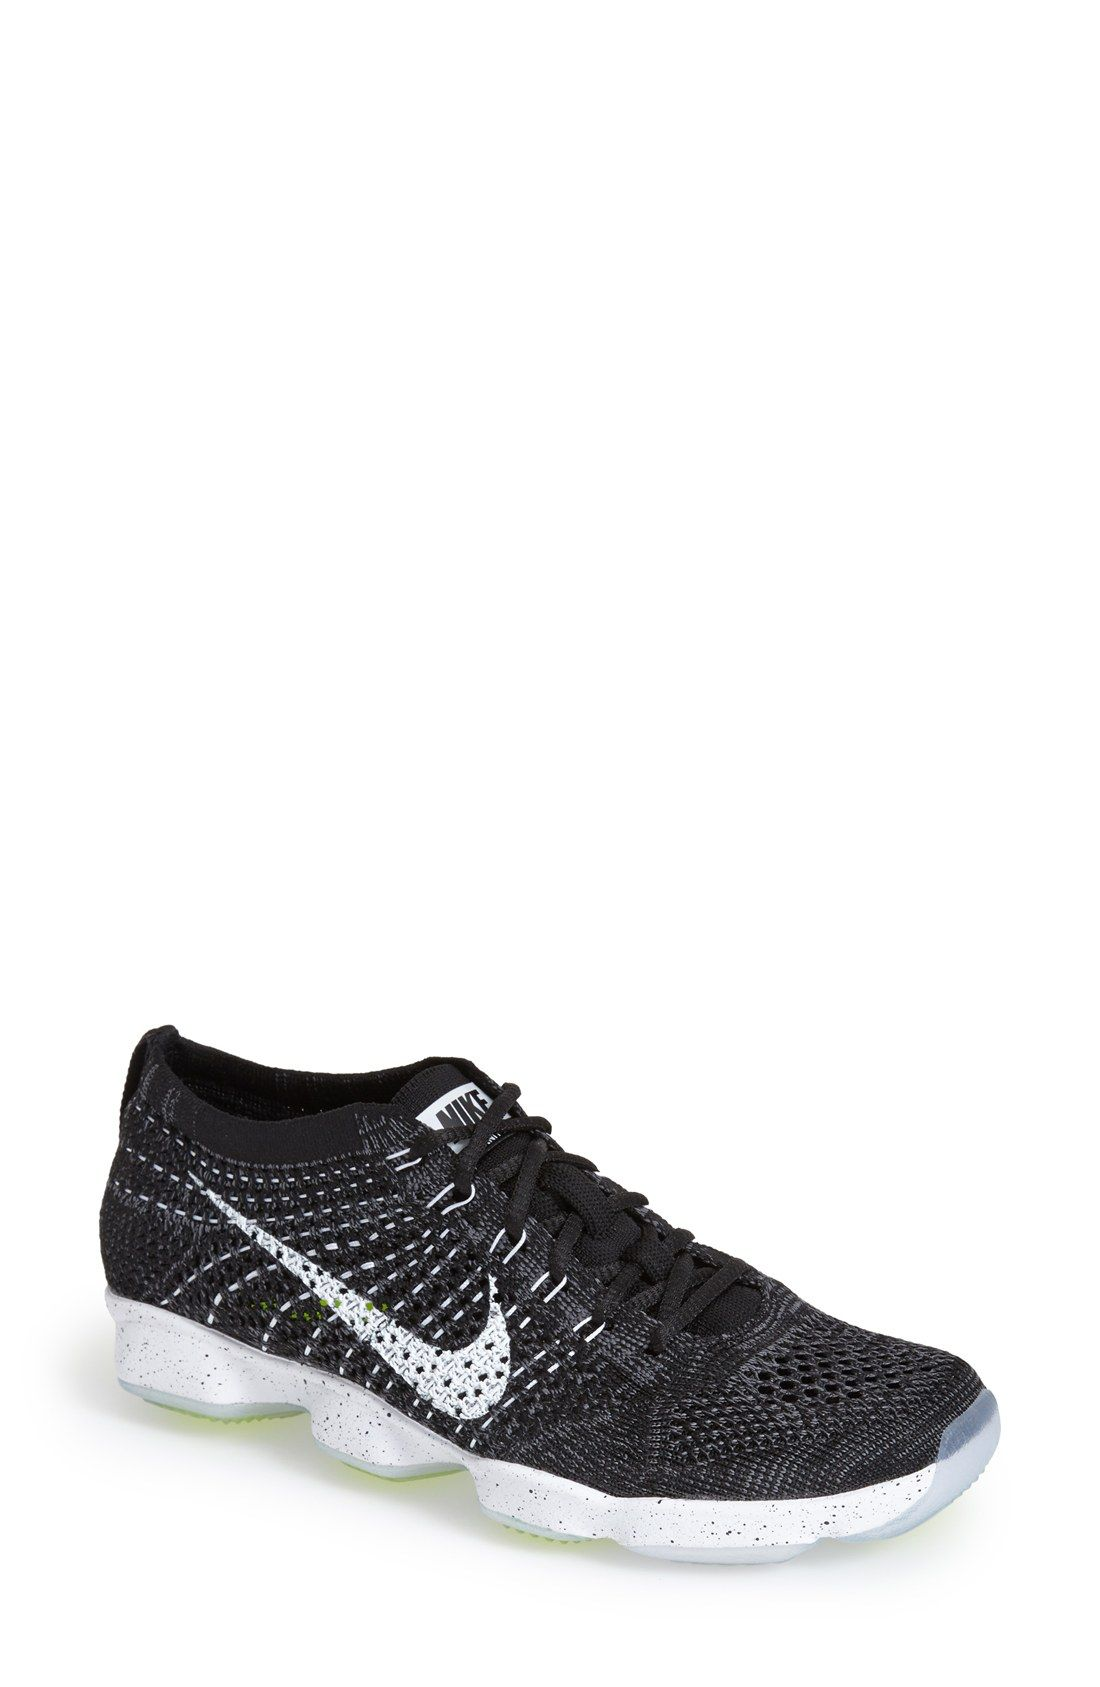 official photos 7313c 73903 Nike  Flyknit Zoom  Agility Training Shoe (Women)